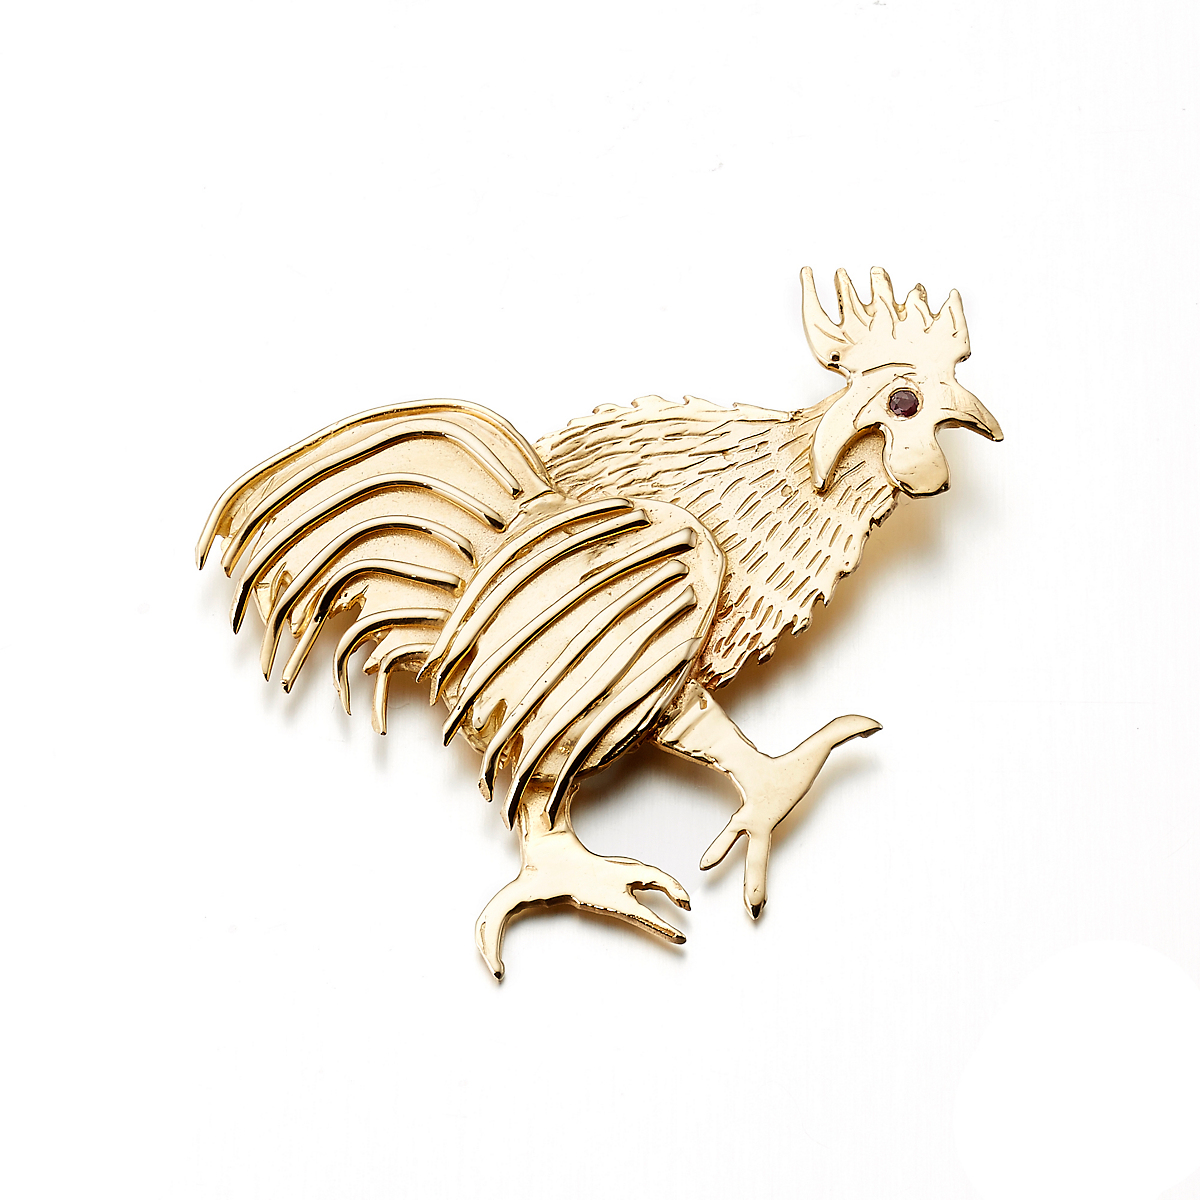 Mia Fonssagrives-Solow Gold Walking Rooster With Ruby Brooch